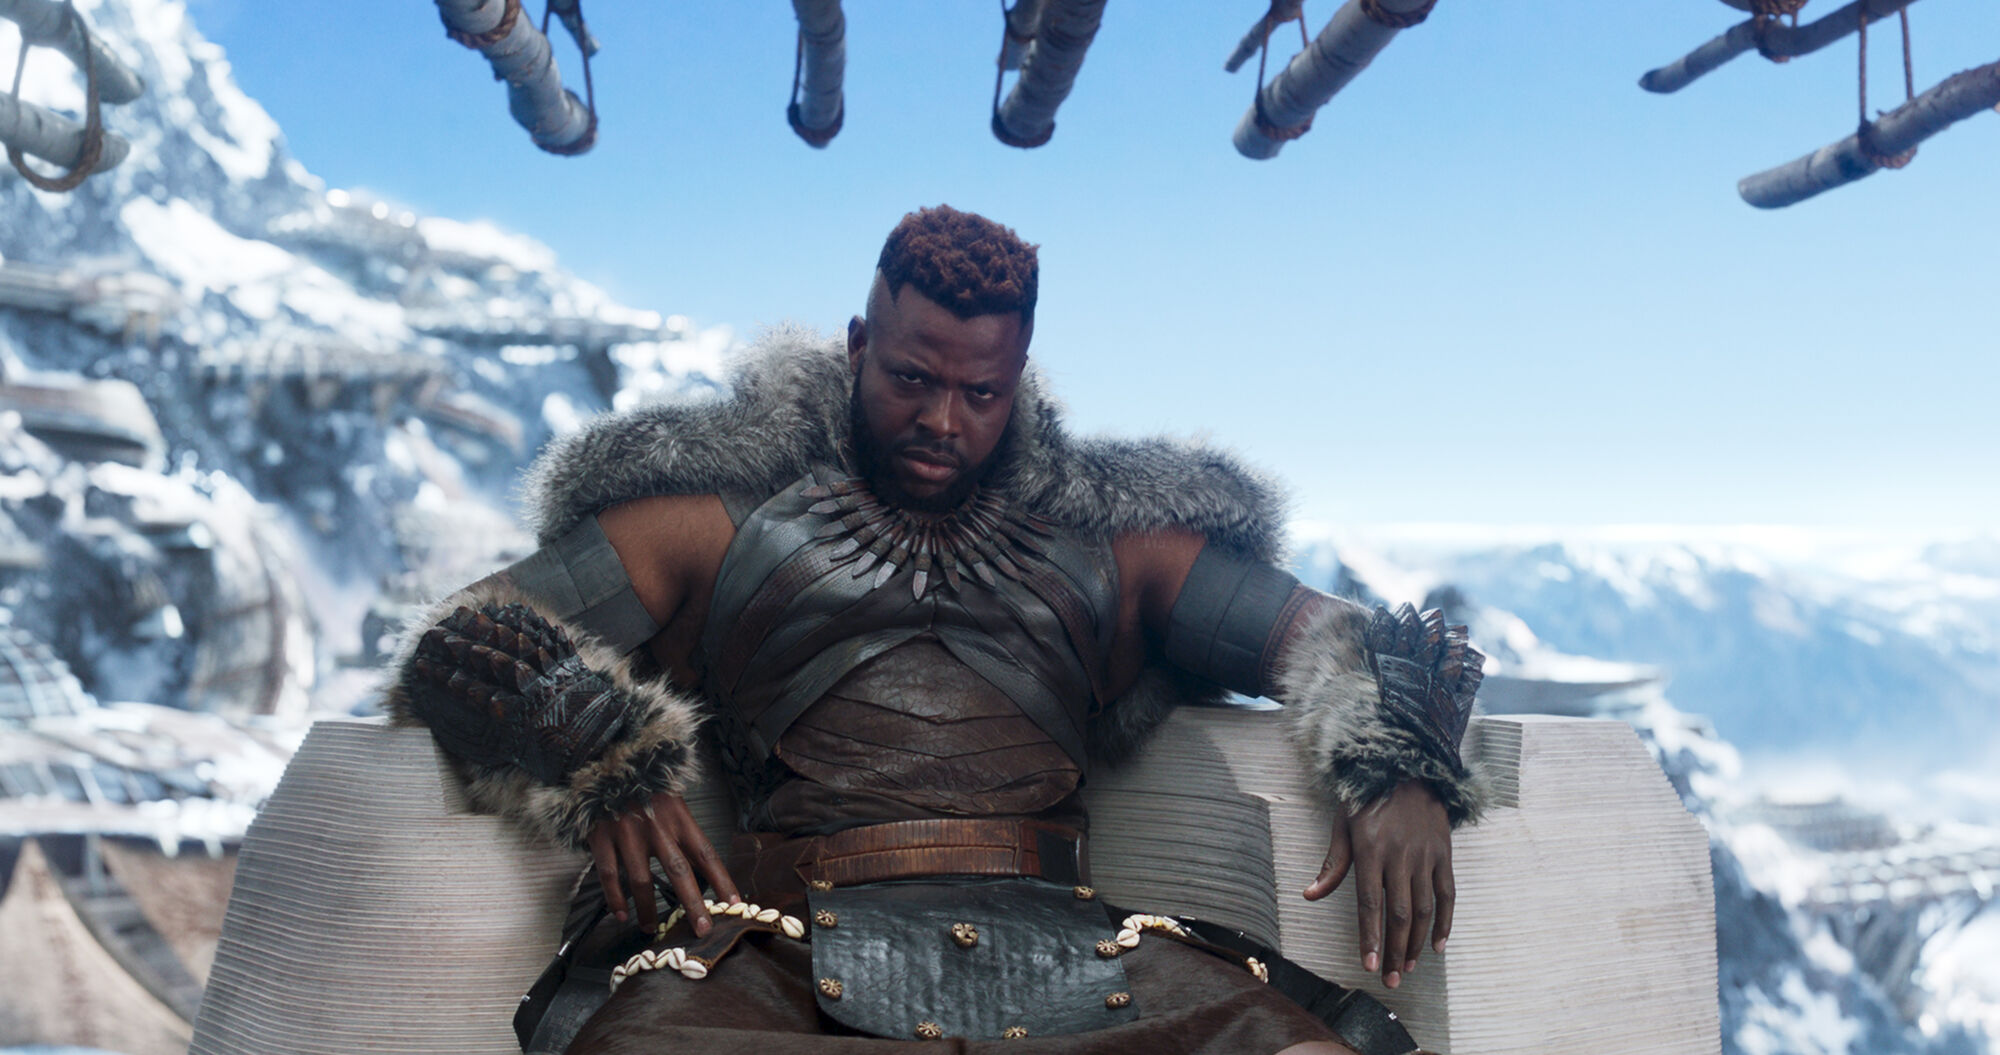 Still from Marvel Studios' Black Panther, featuring M'Baku (Winston Duke). Photo by Film Frame. Courtesy of and ©Marvel Studios 2018.